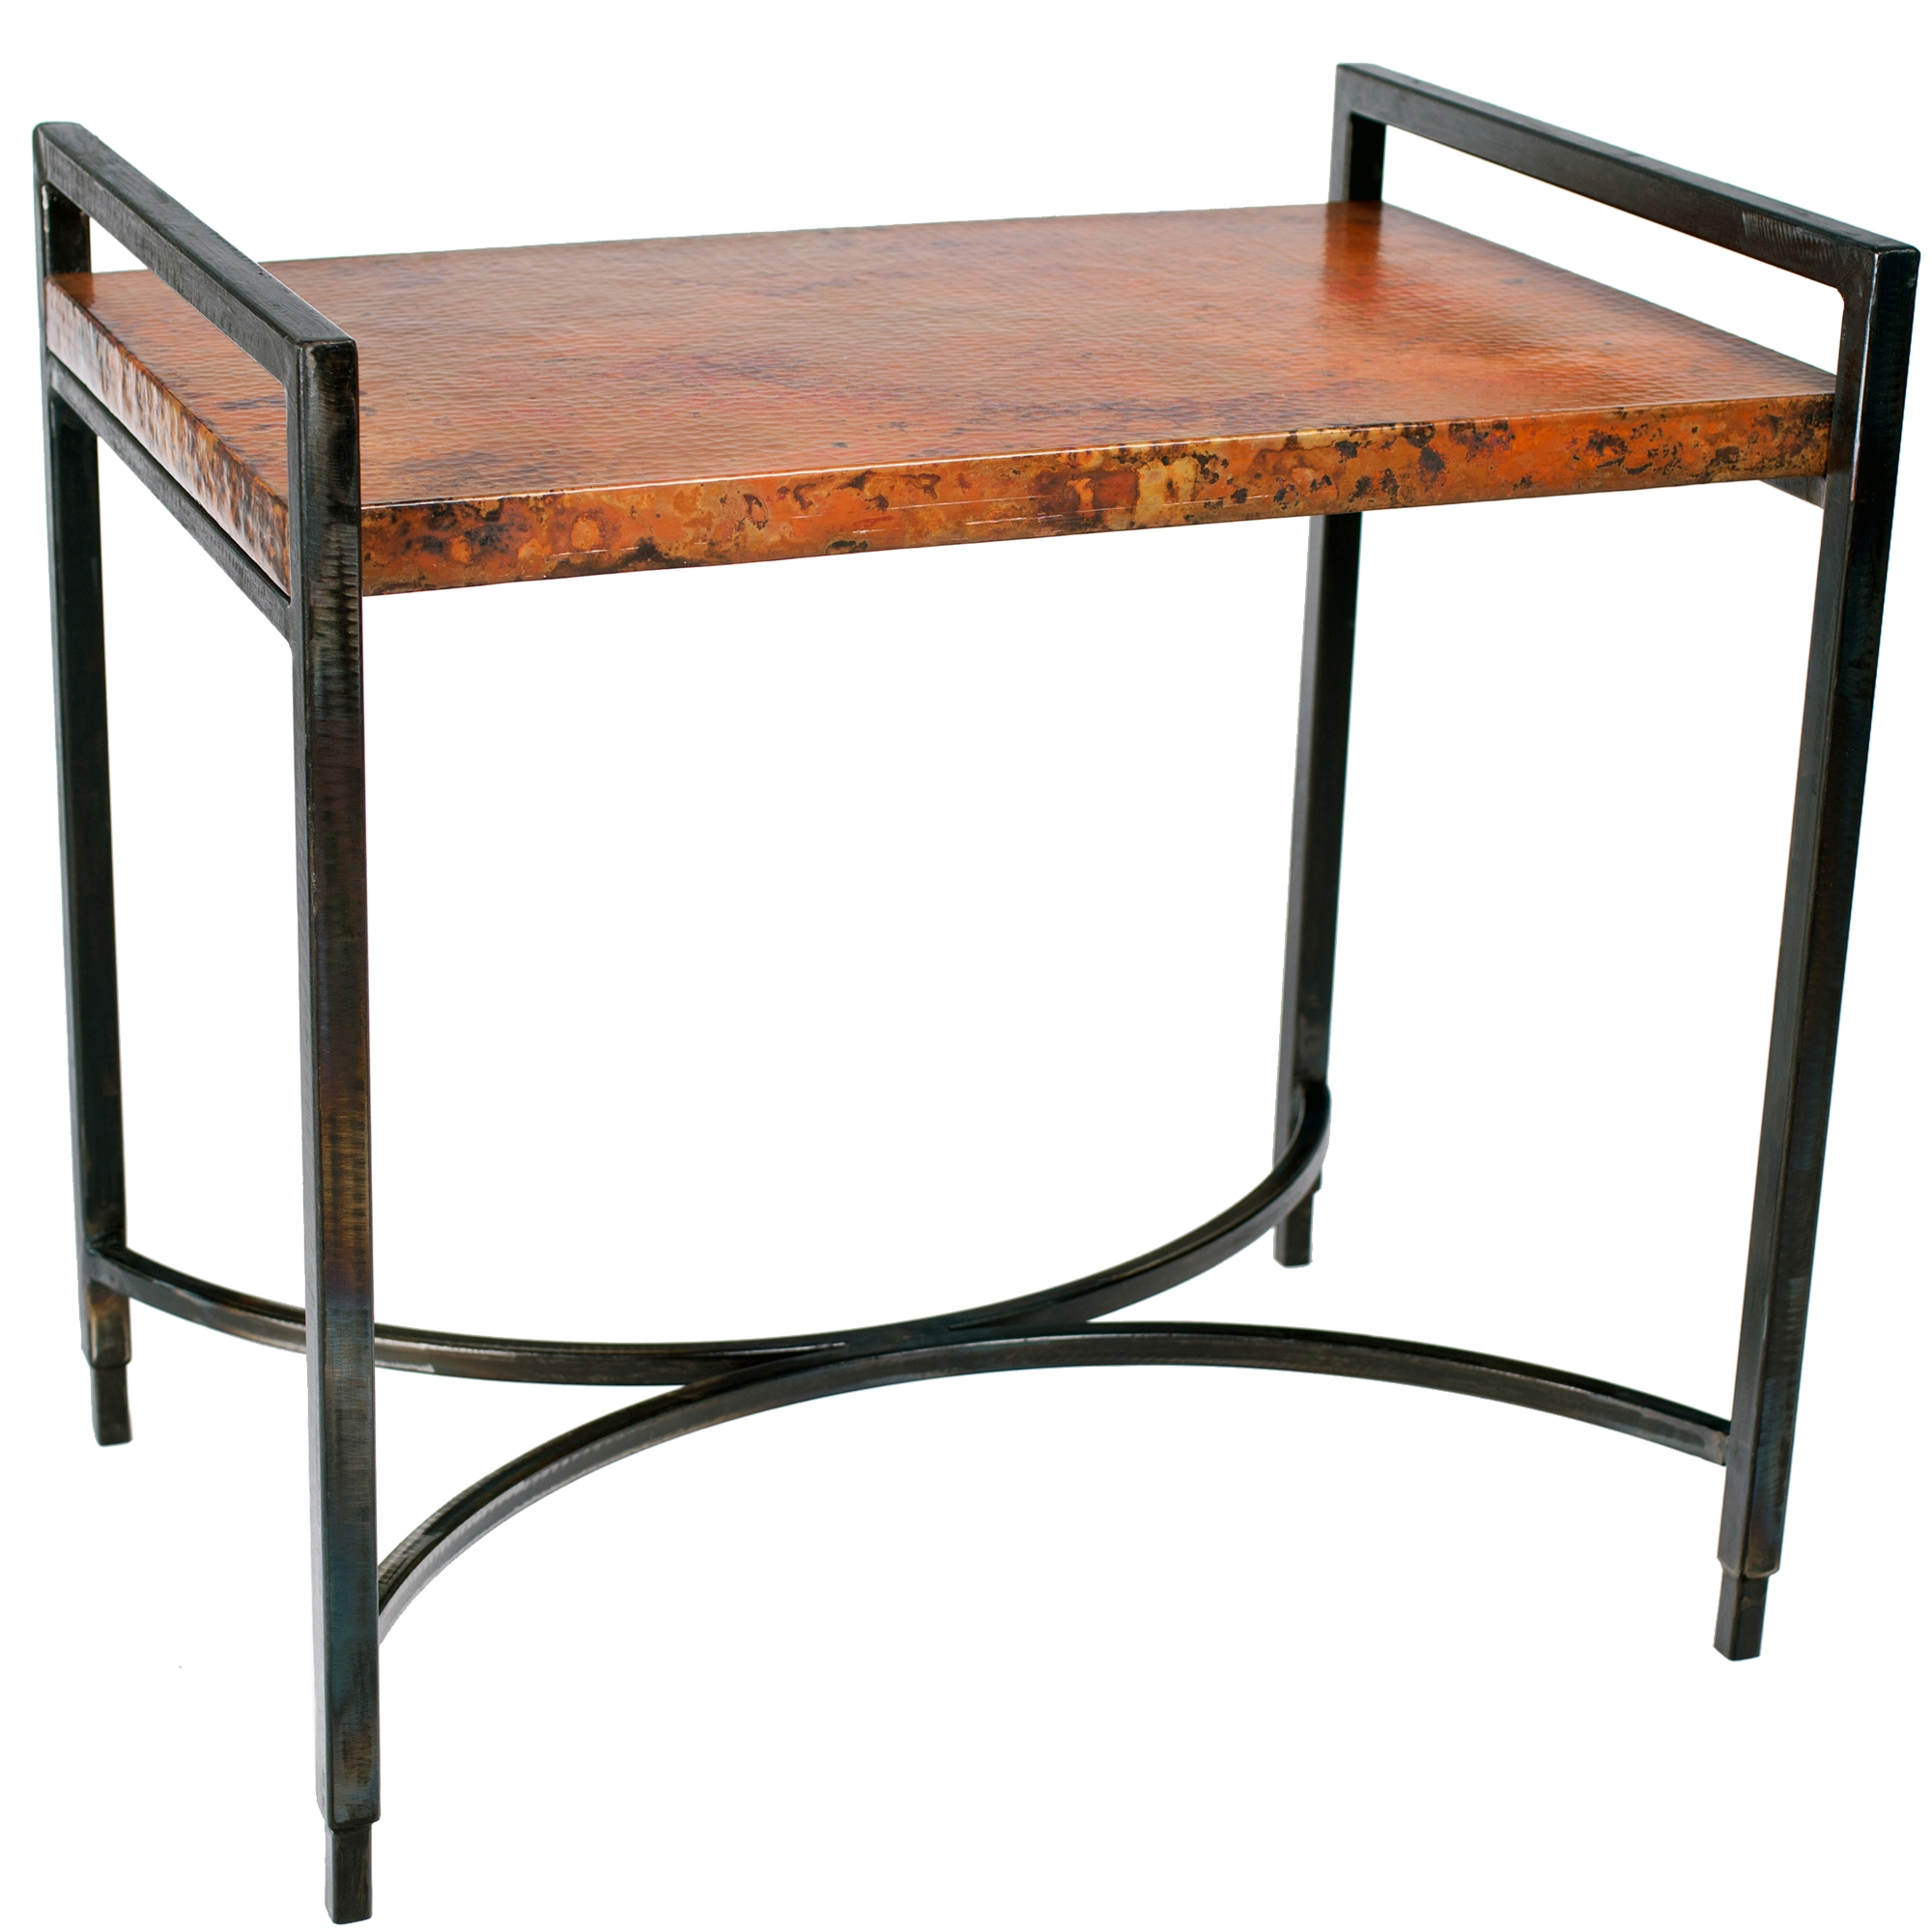 Copper Top Rectangular Coffee Table: Rectangular Iron Tray Table In Fire Finish With Hammered